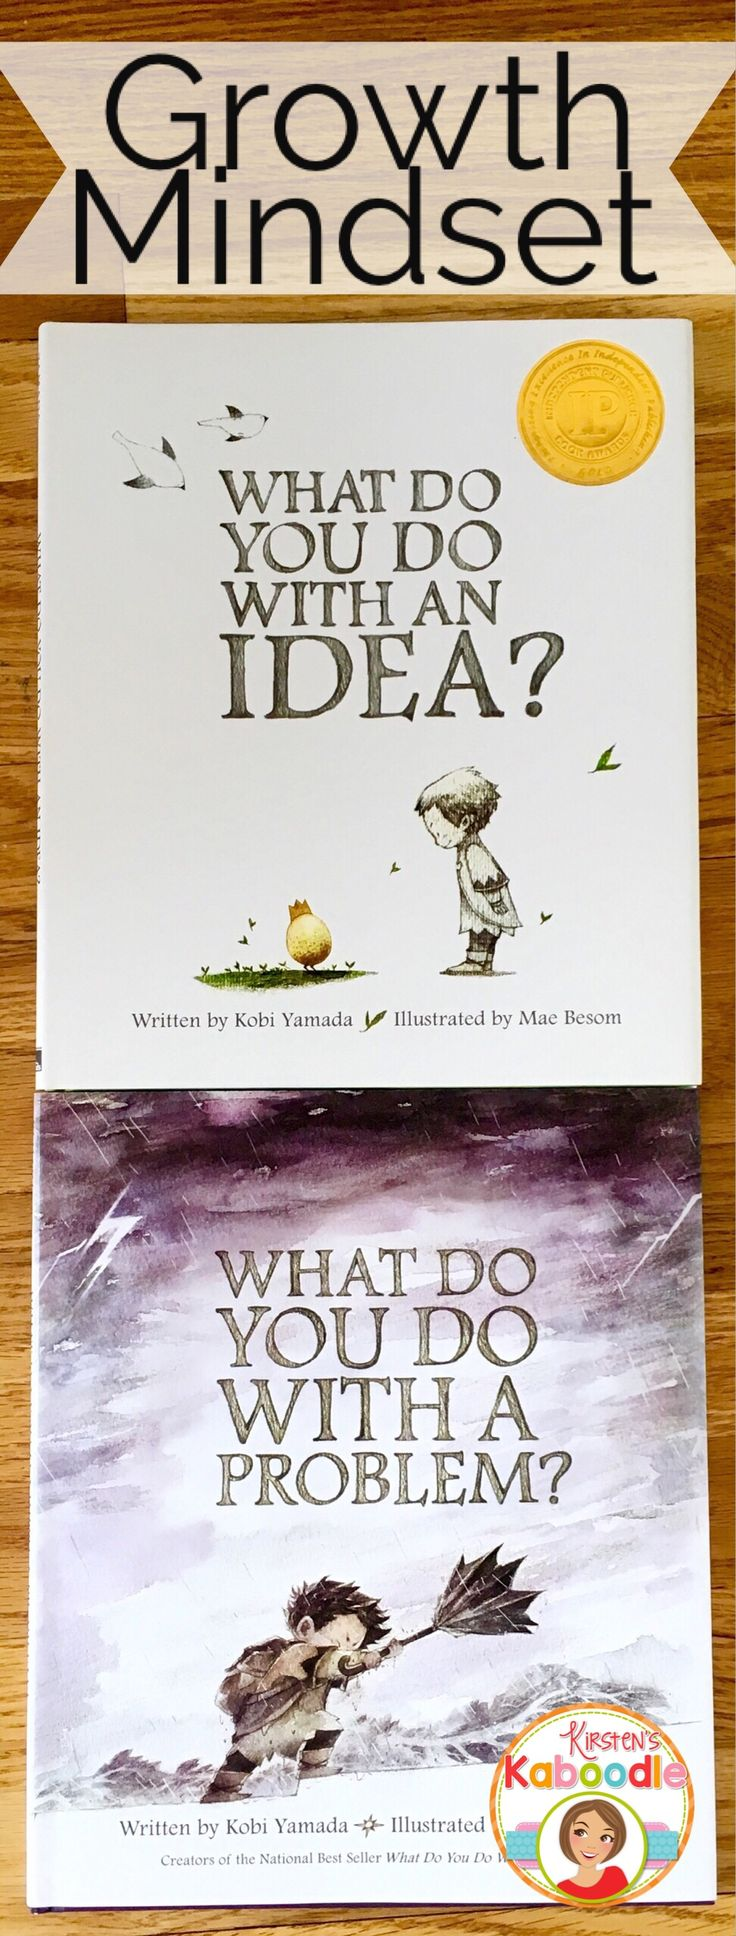 online jewelry store Are you teaching your students about growth mindset  These books by Kobi Yamada